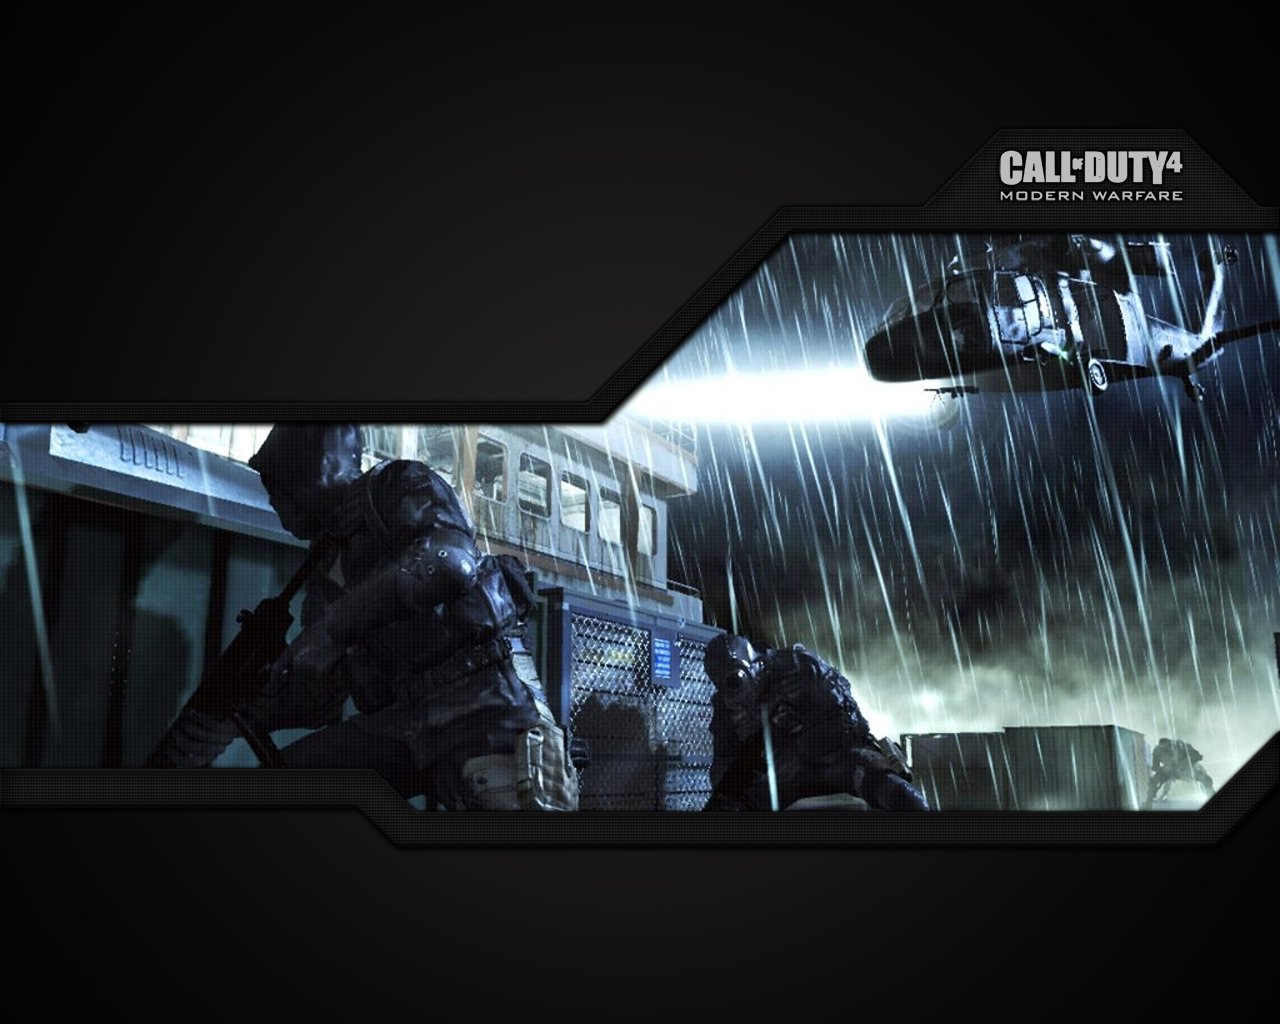 Call of Duty 4: Modern Warfare Region Free